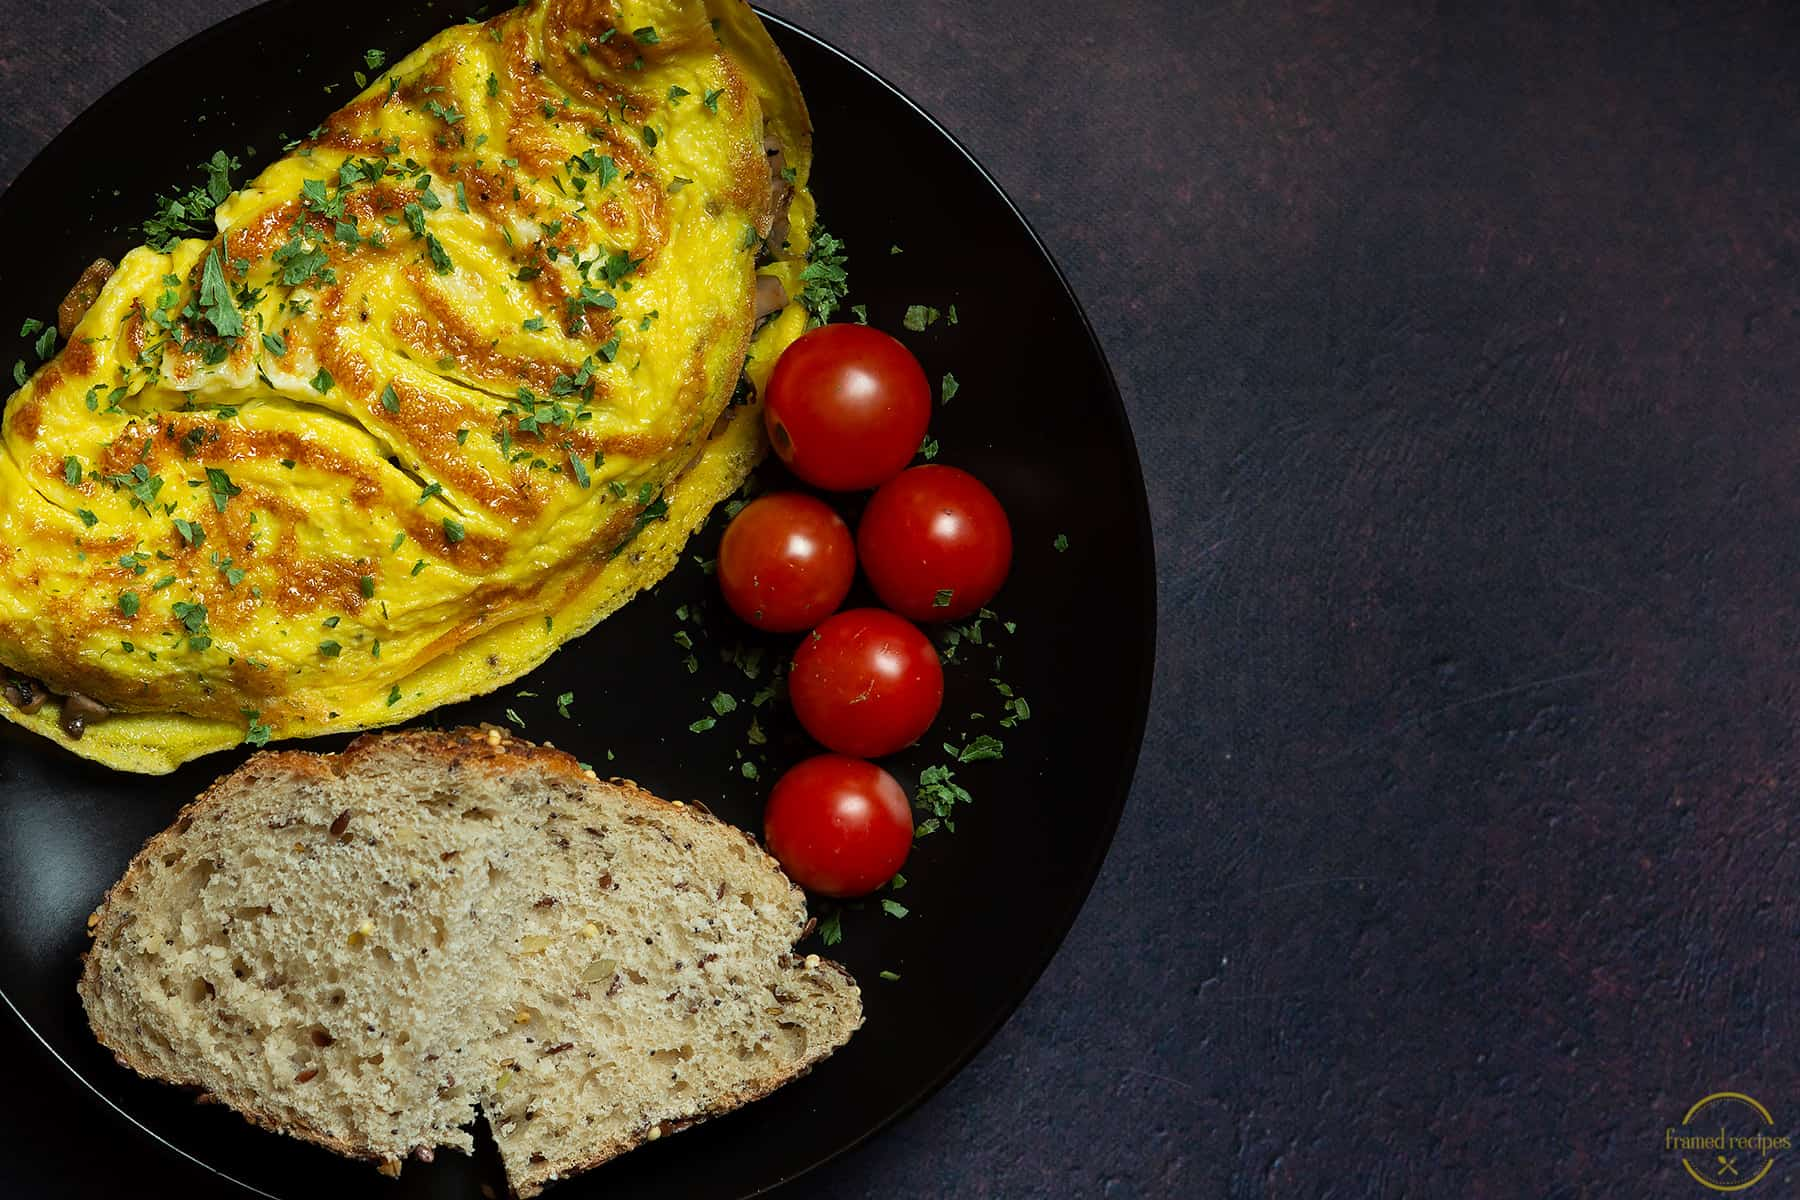 egg omlete served with cherry tomatoes & multi grain bread